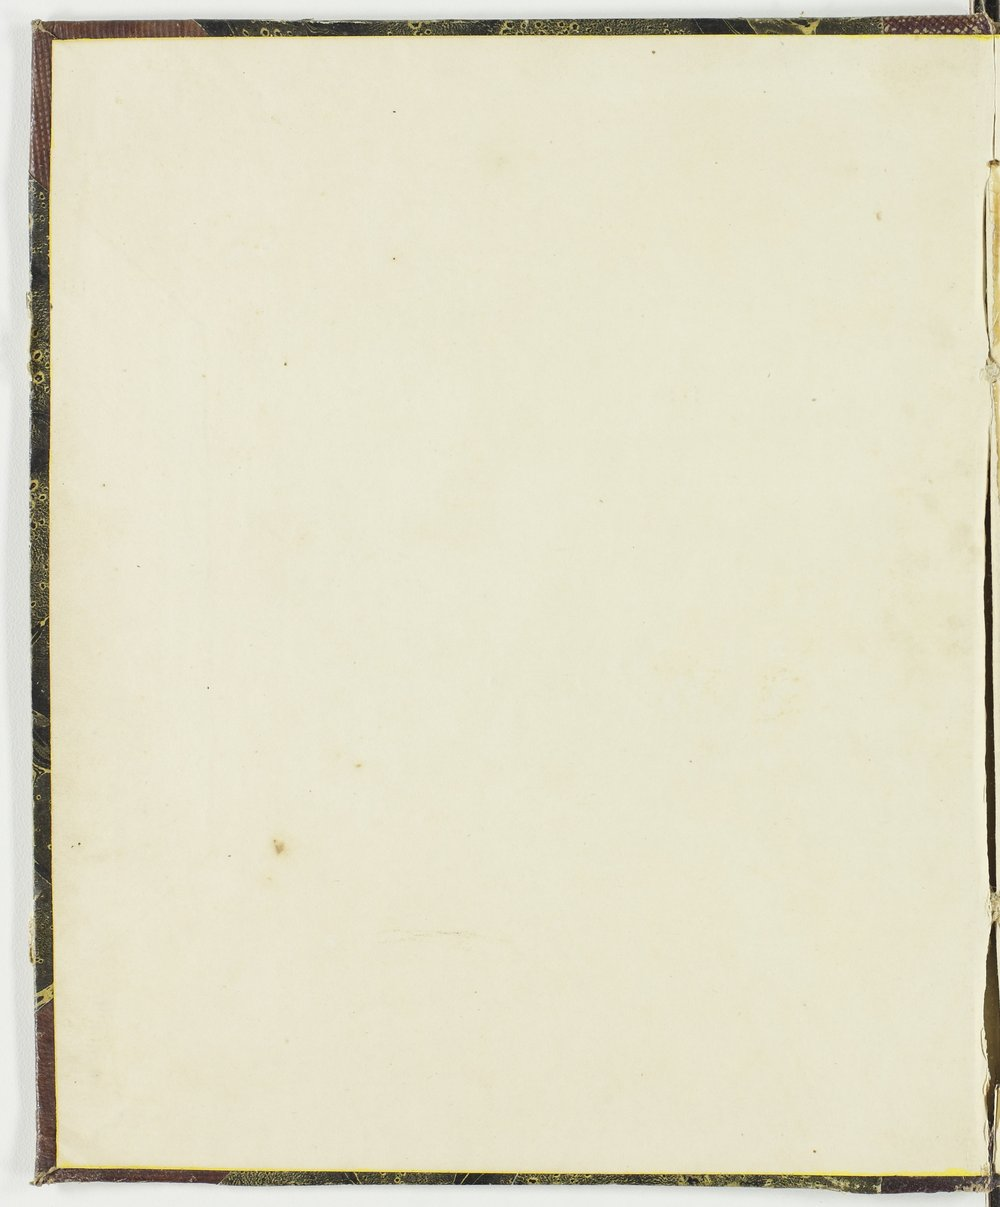 Isaac Tichenor Goodnow diary - Inside front cover